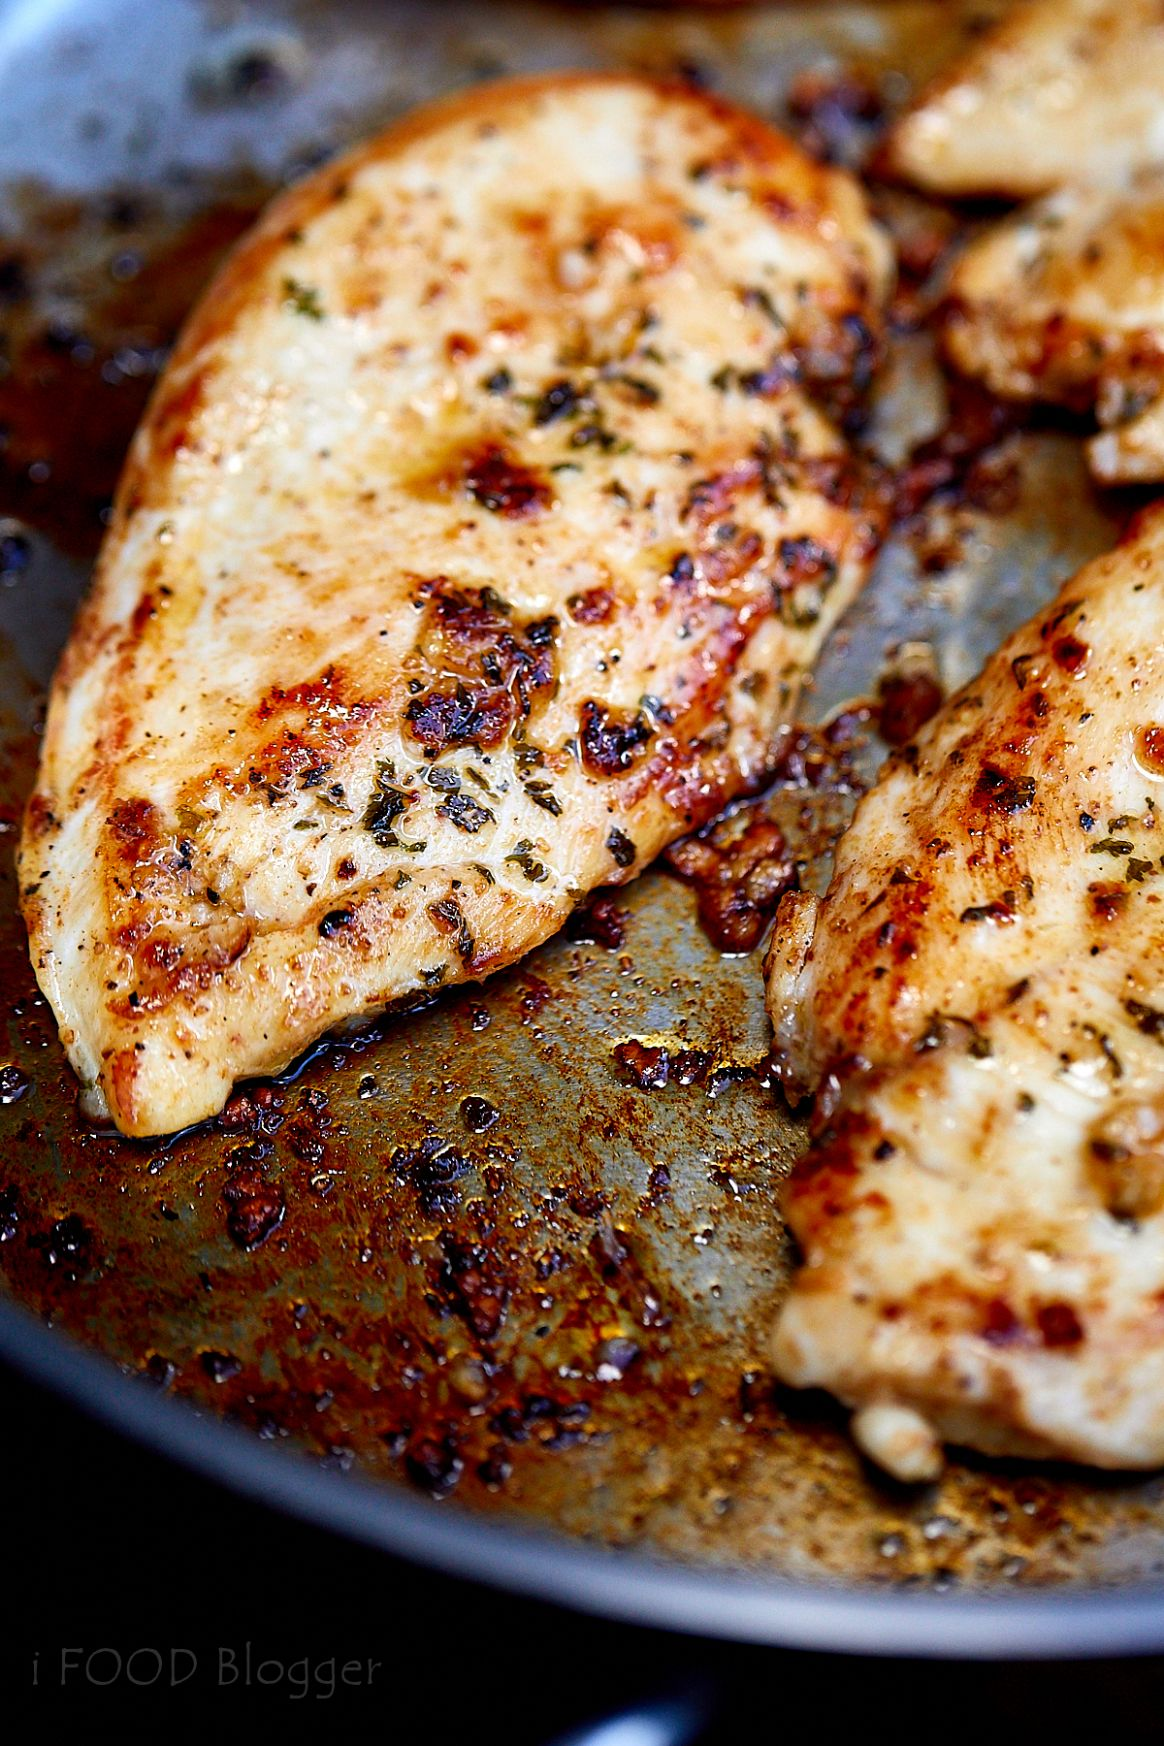 12-Minute Pan-Fried Chicken Breast - Recipes Chicken Breast Pieces